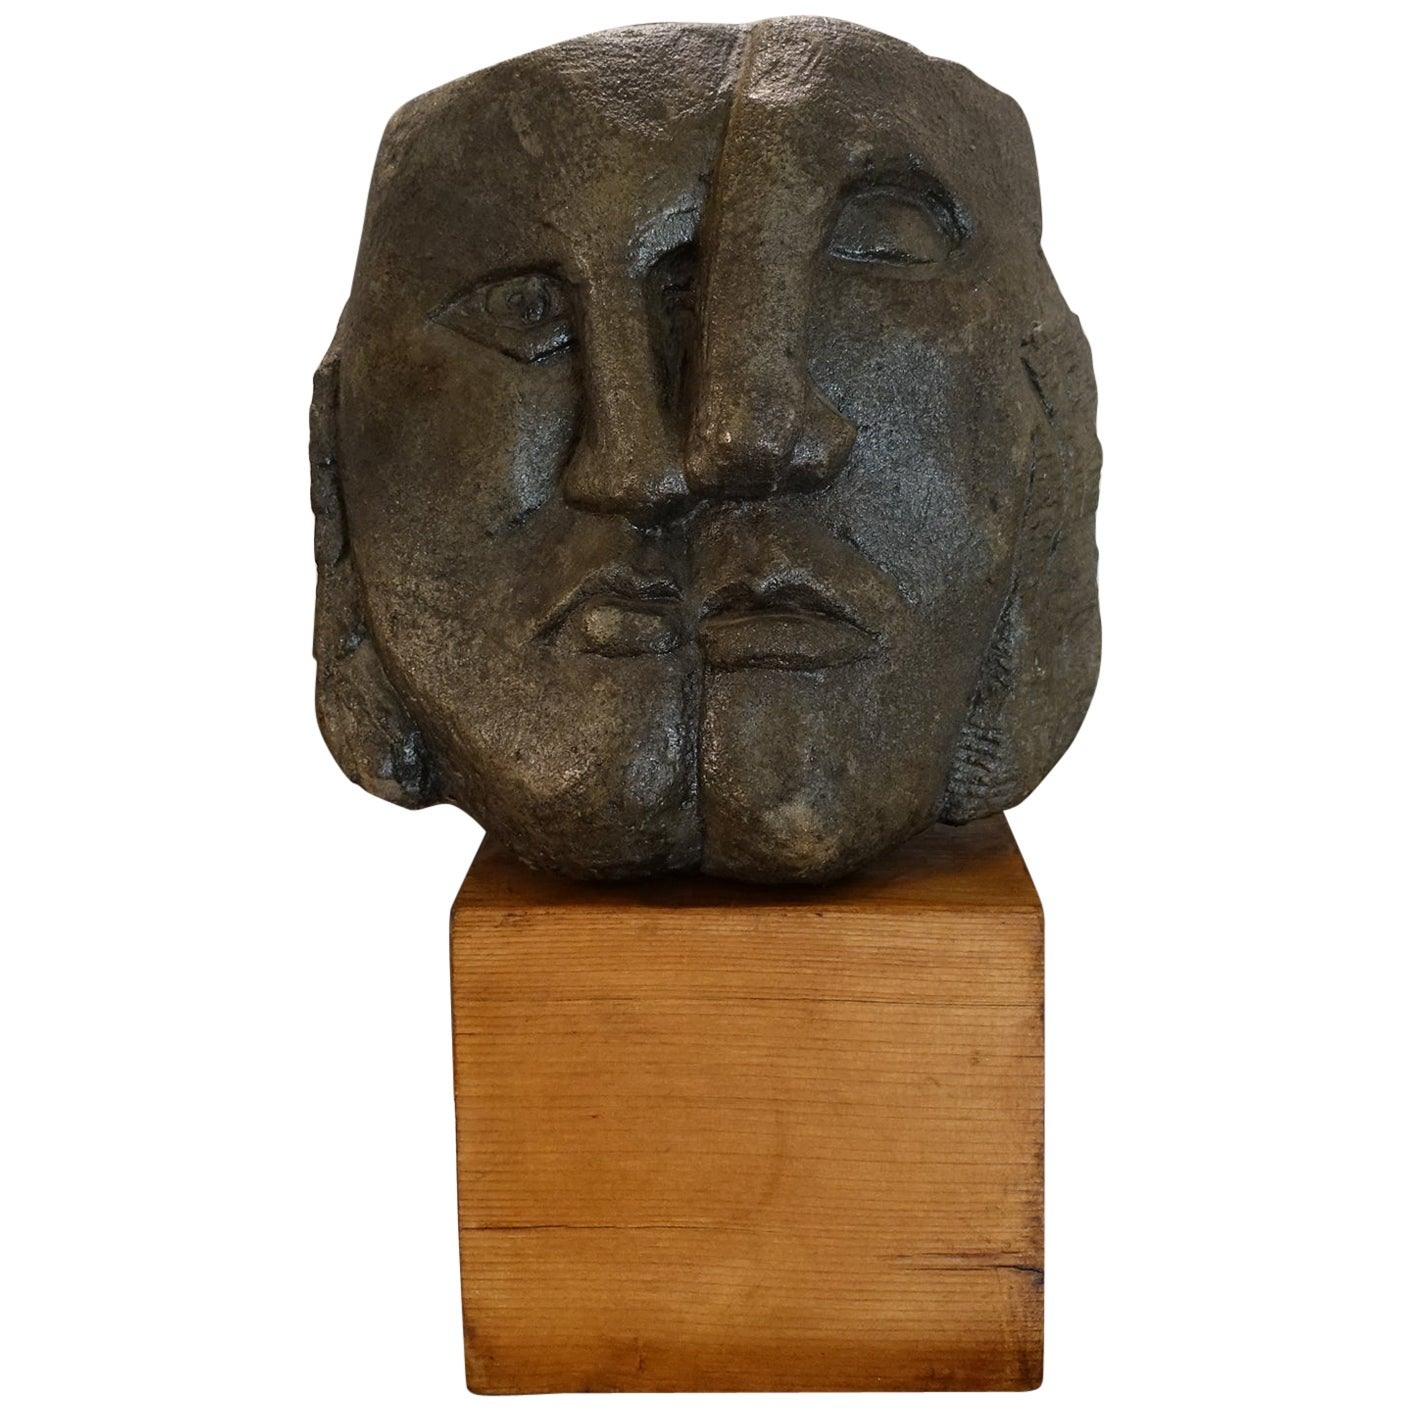 Figurative Concrete Sculpture Picasso Style, Wood Base, Italy, circa 1980s